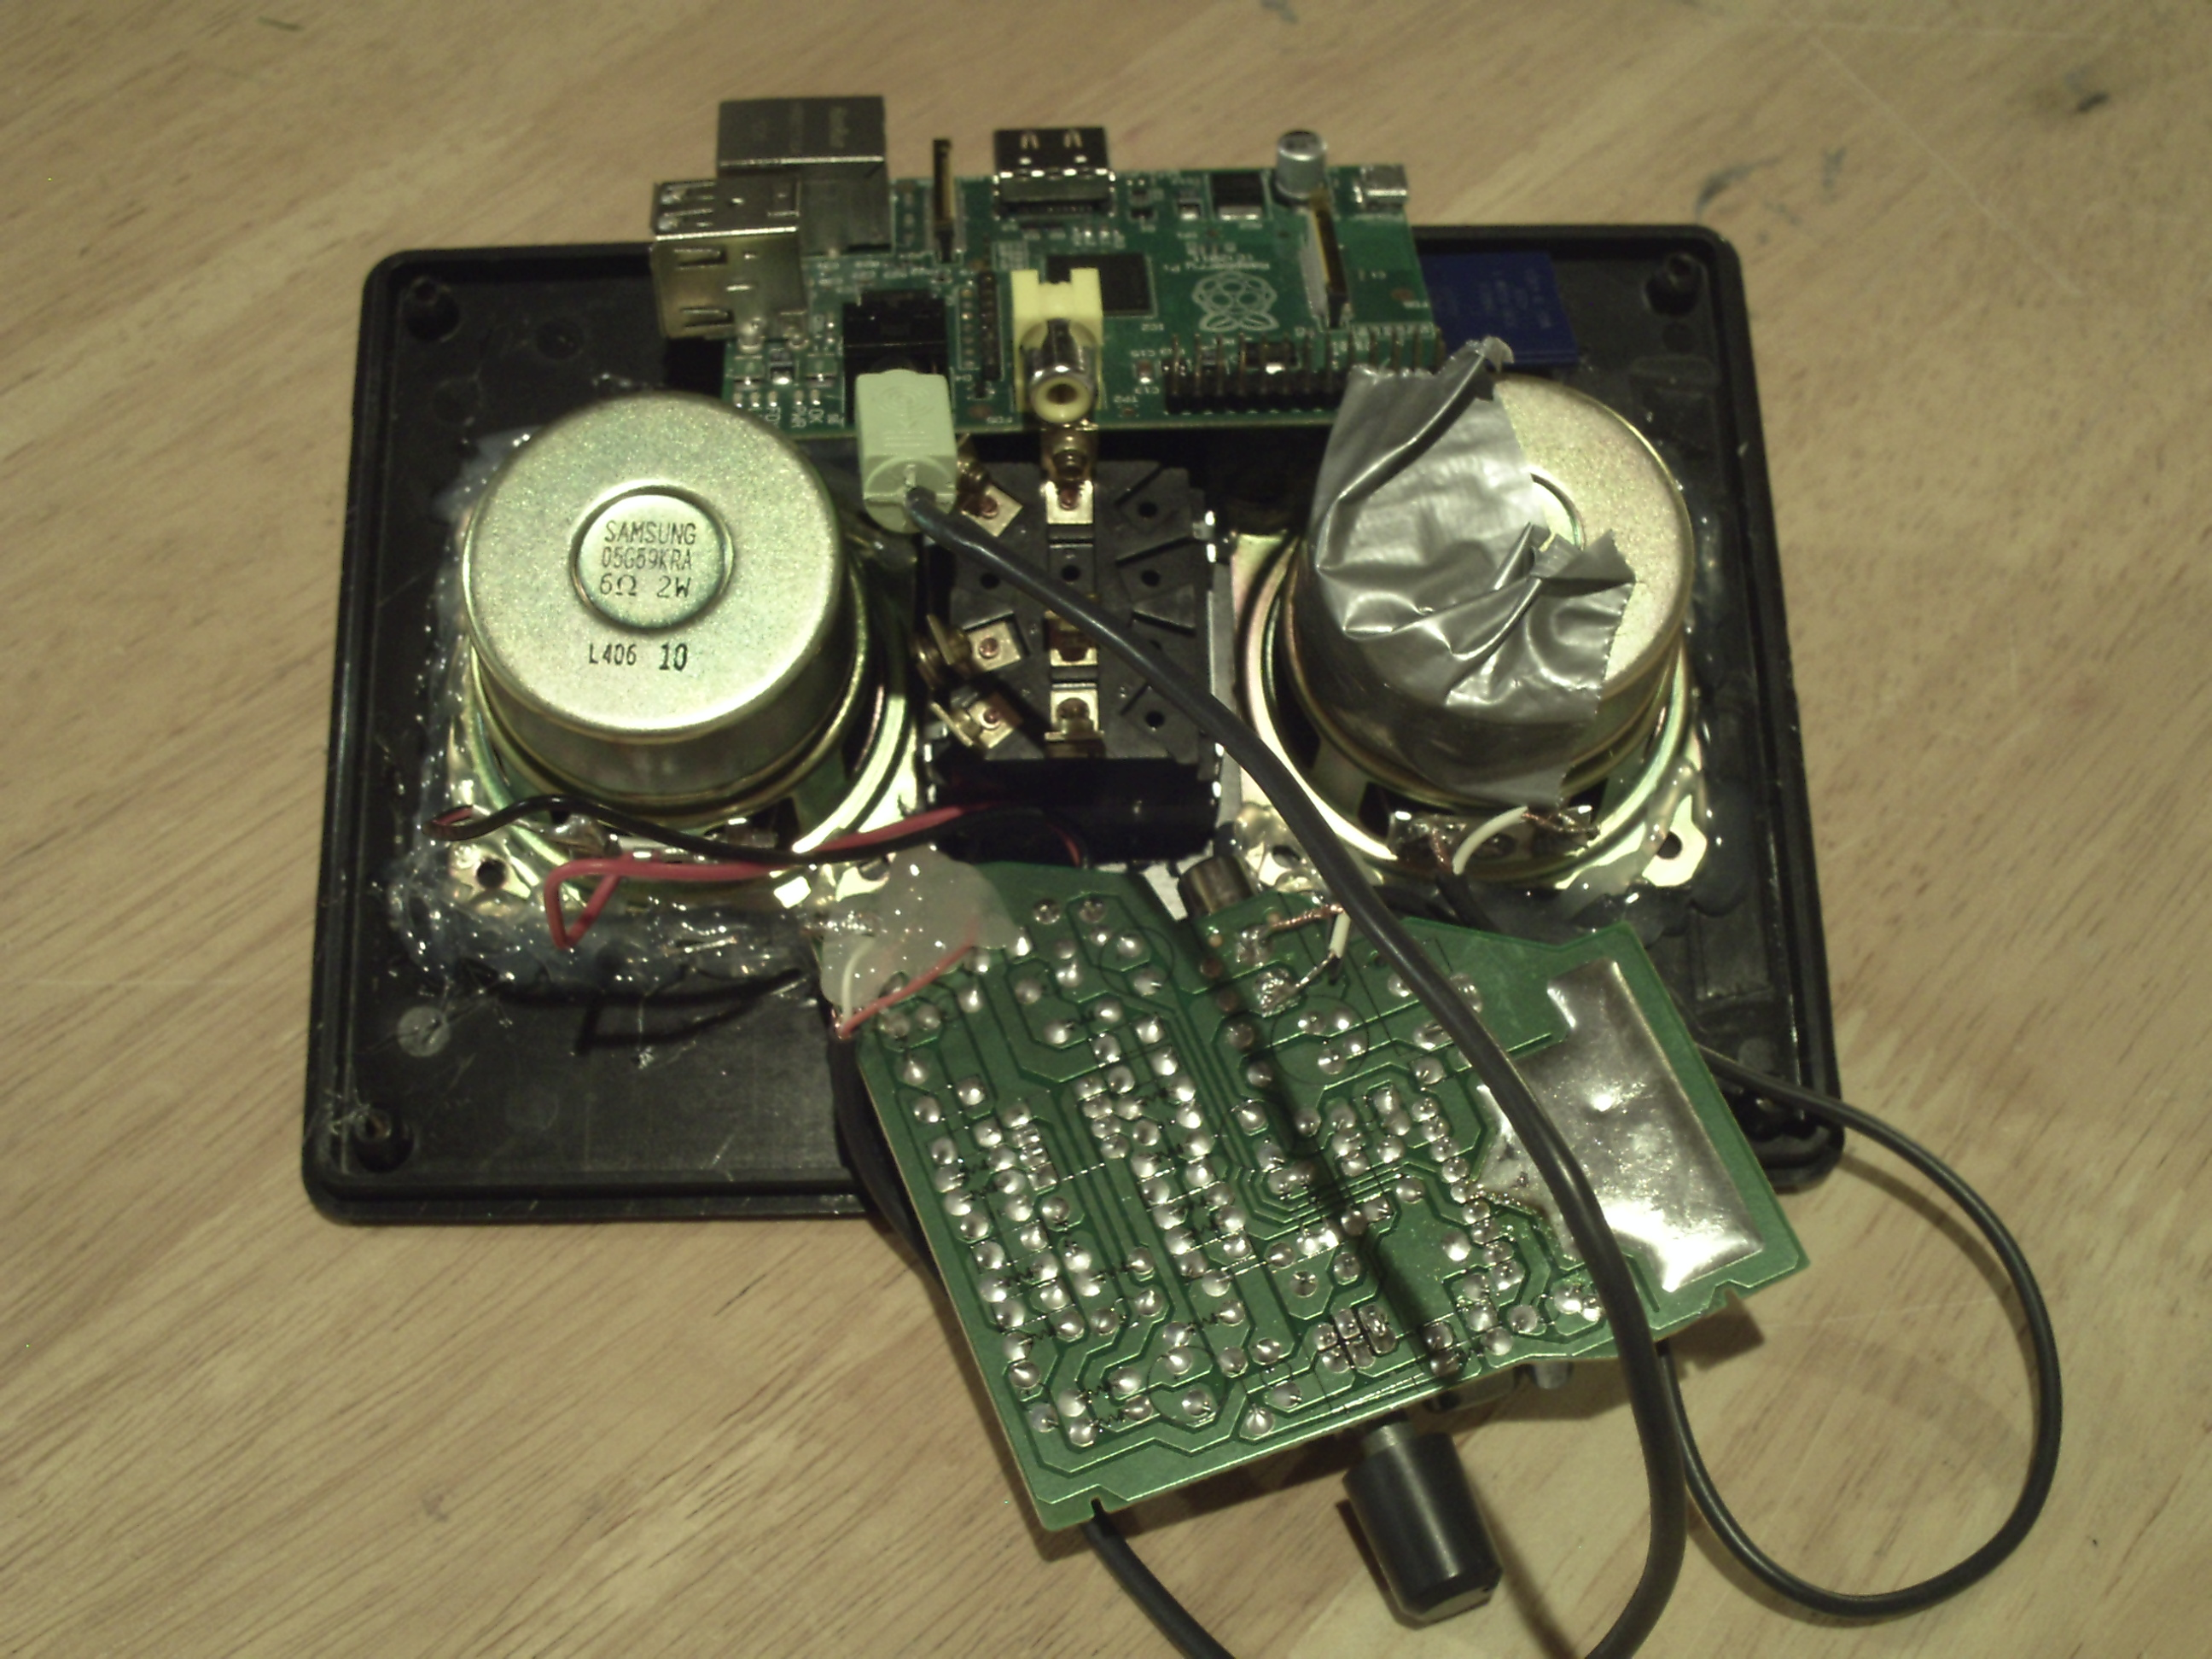 Picture of Hardware - Part 3